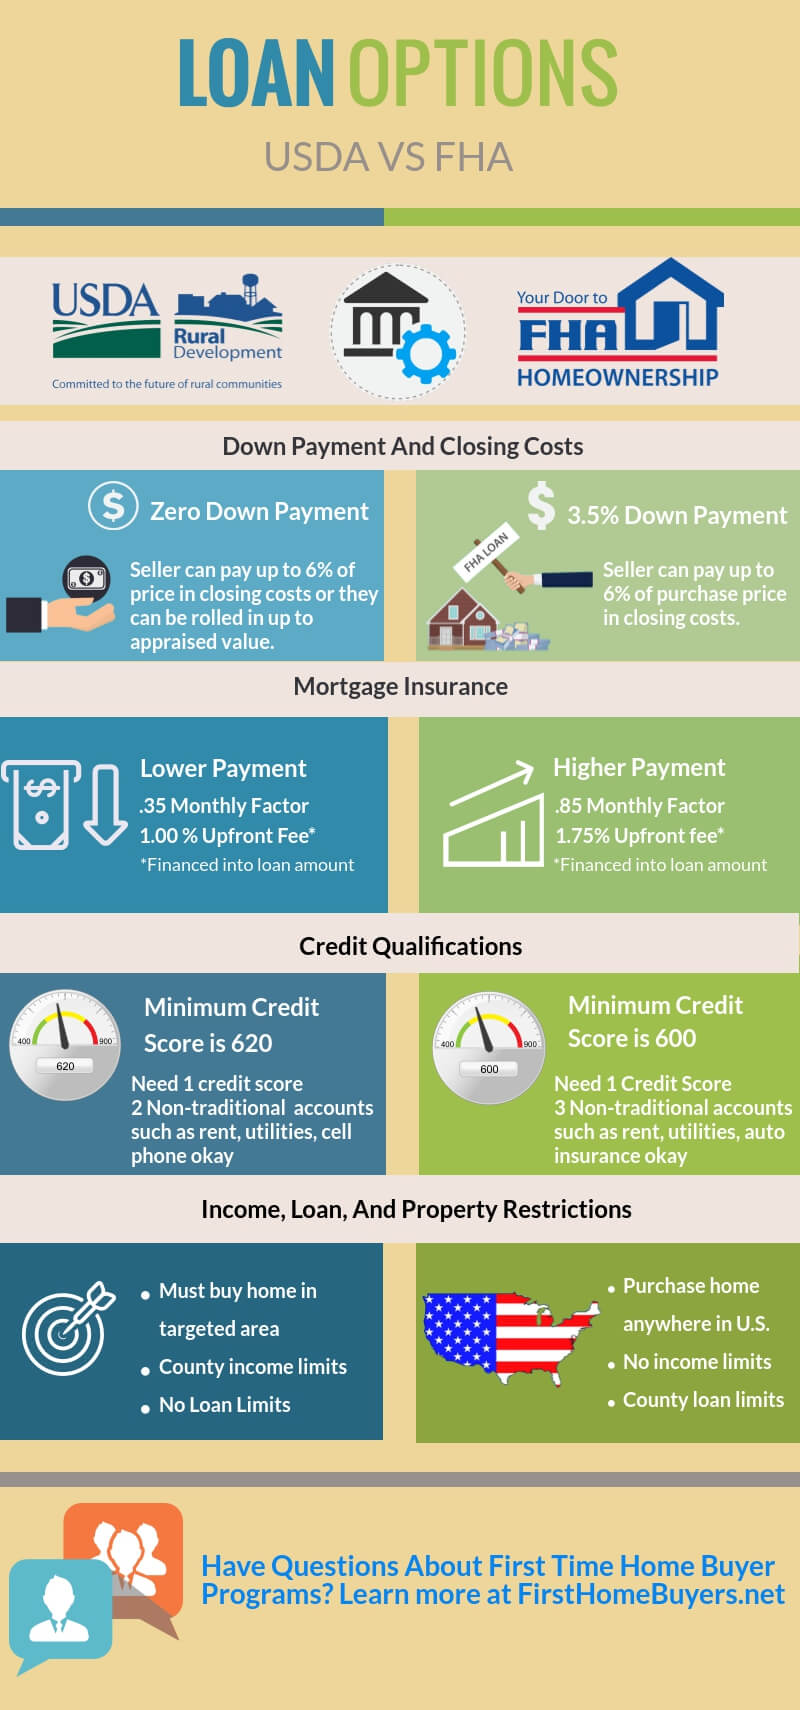 Ohio payday loans online bad credit picture 3